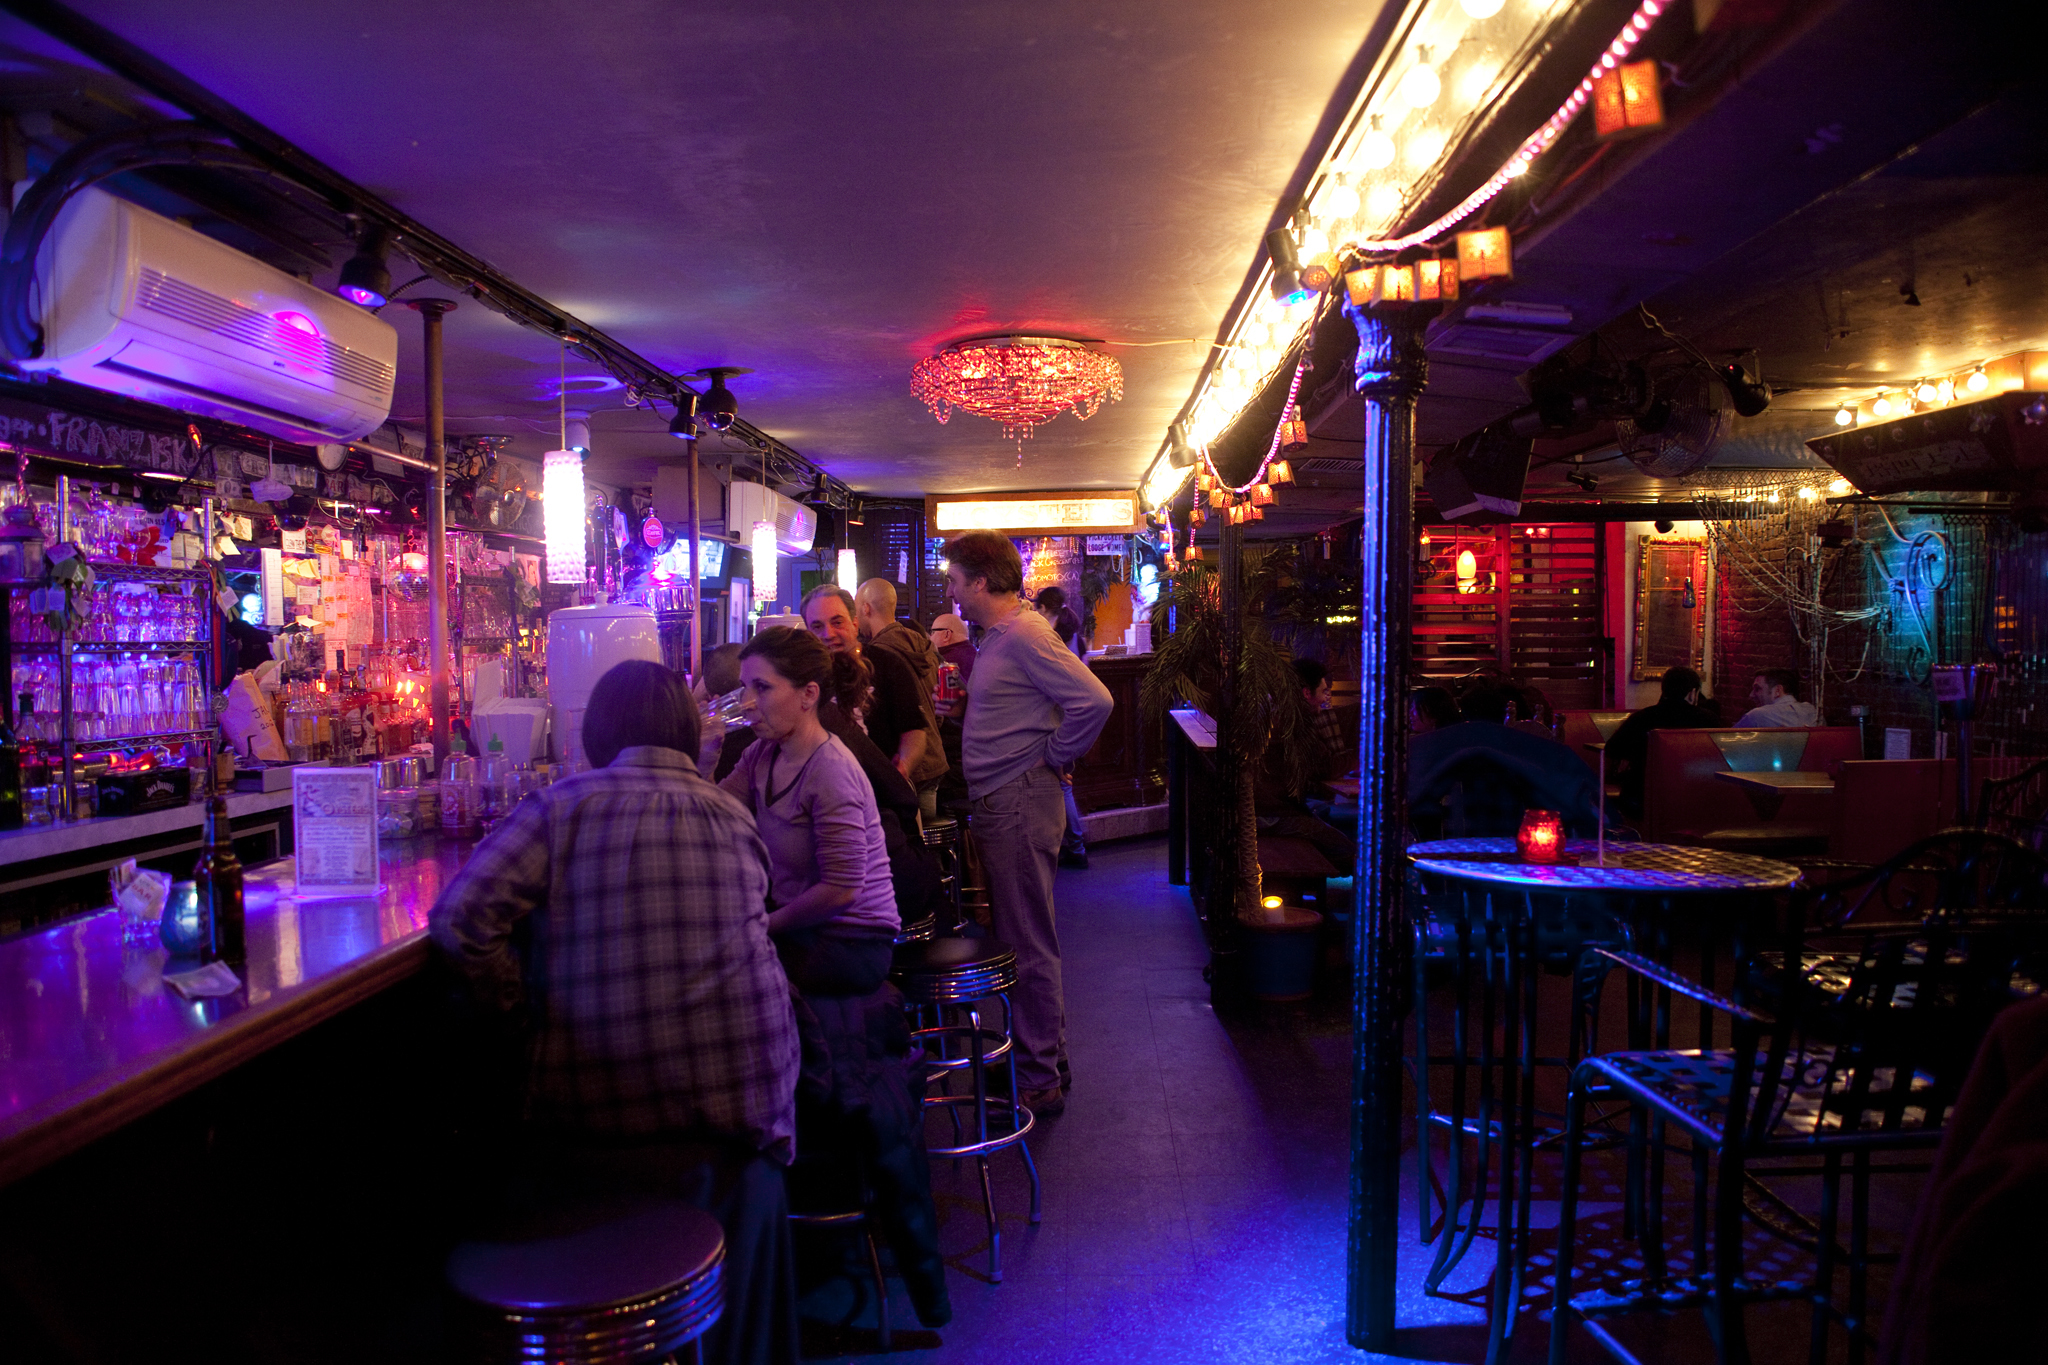 Best Chinatown/Little Italy bars